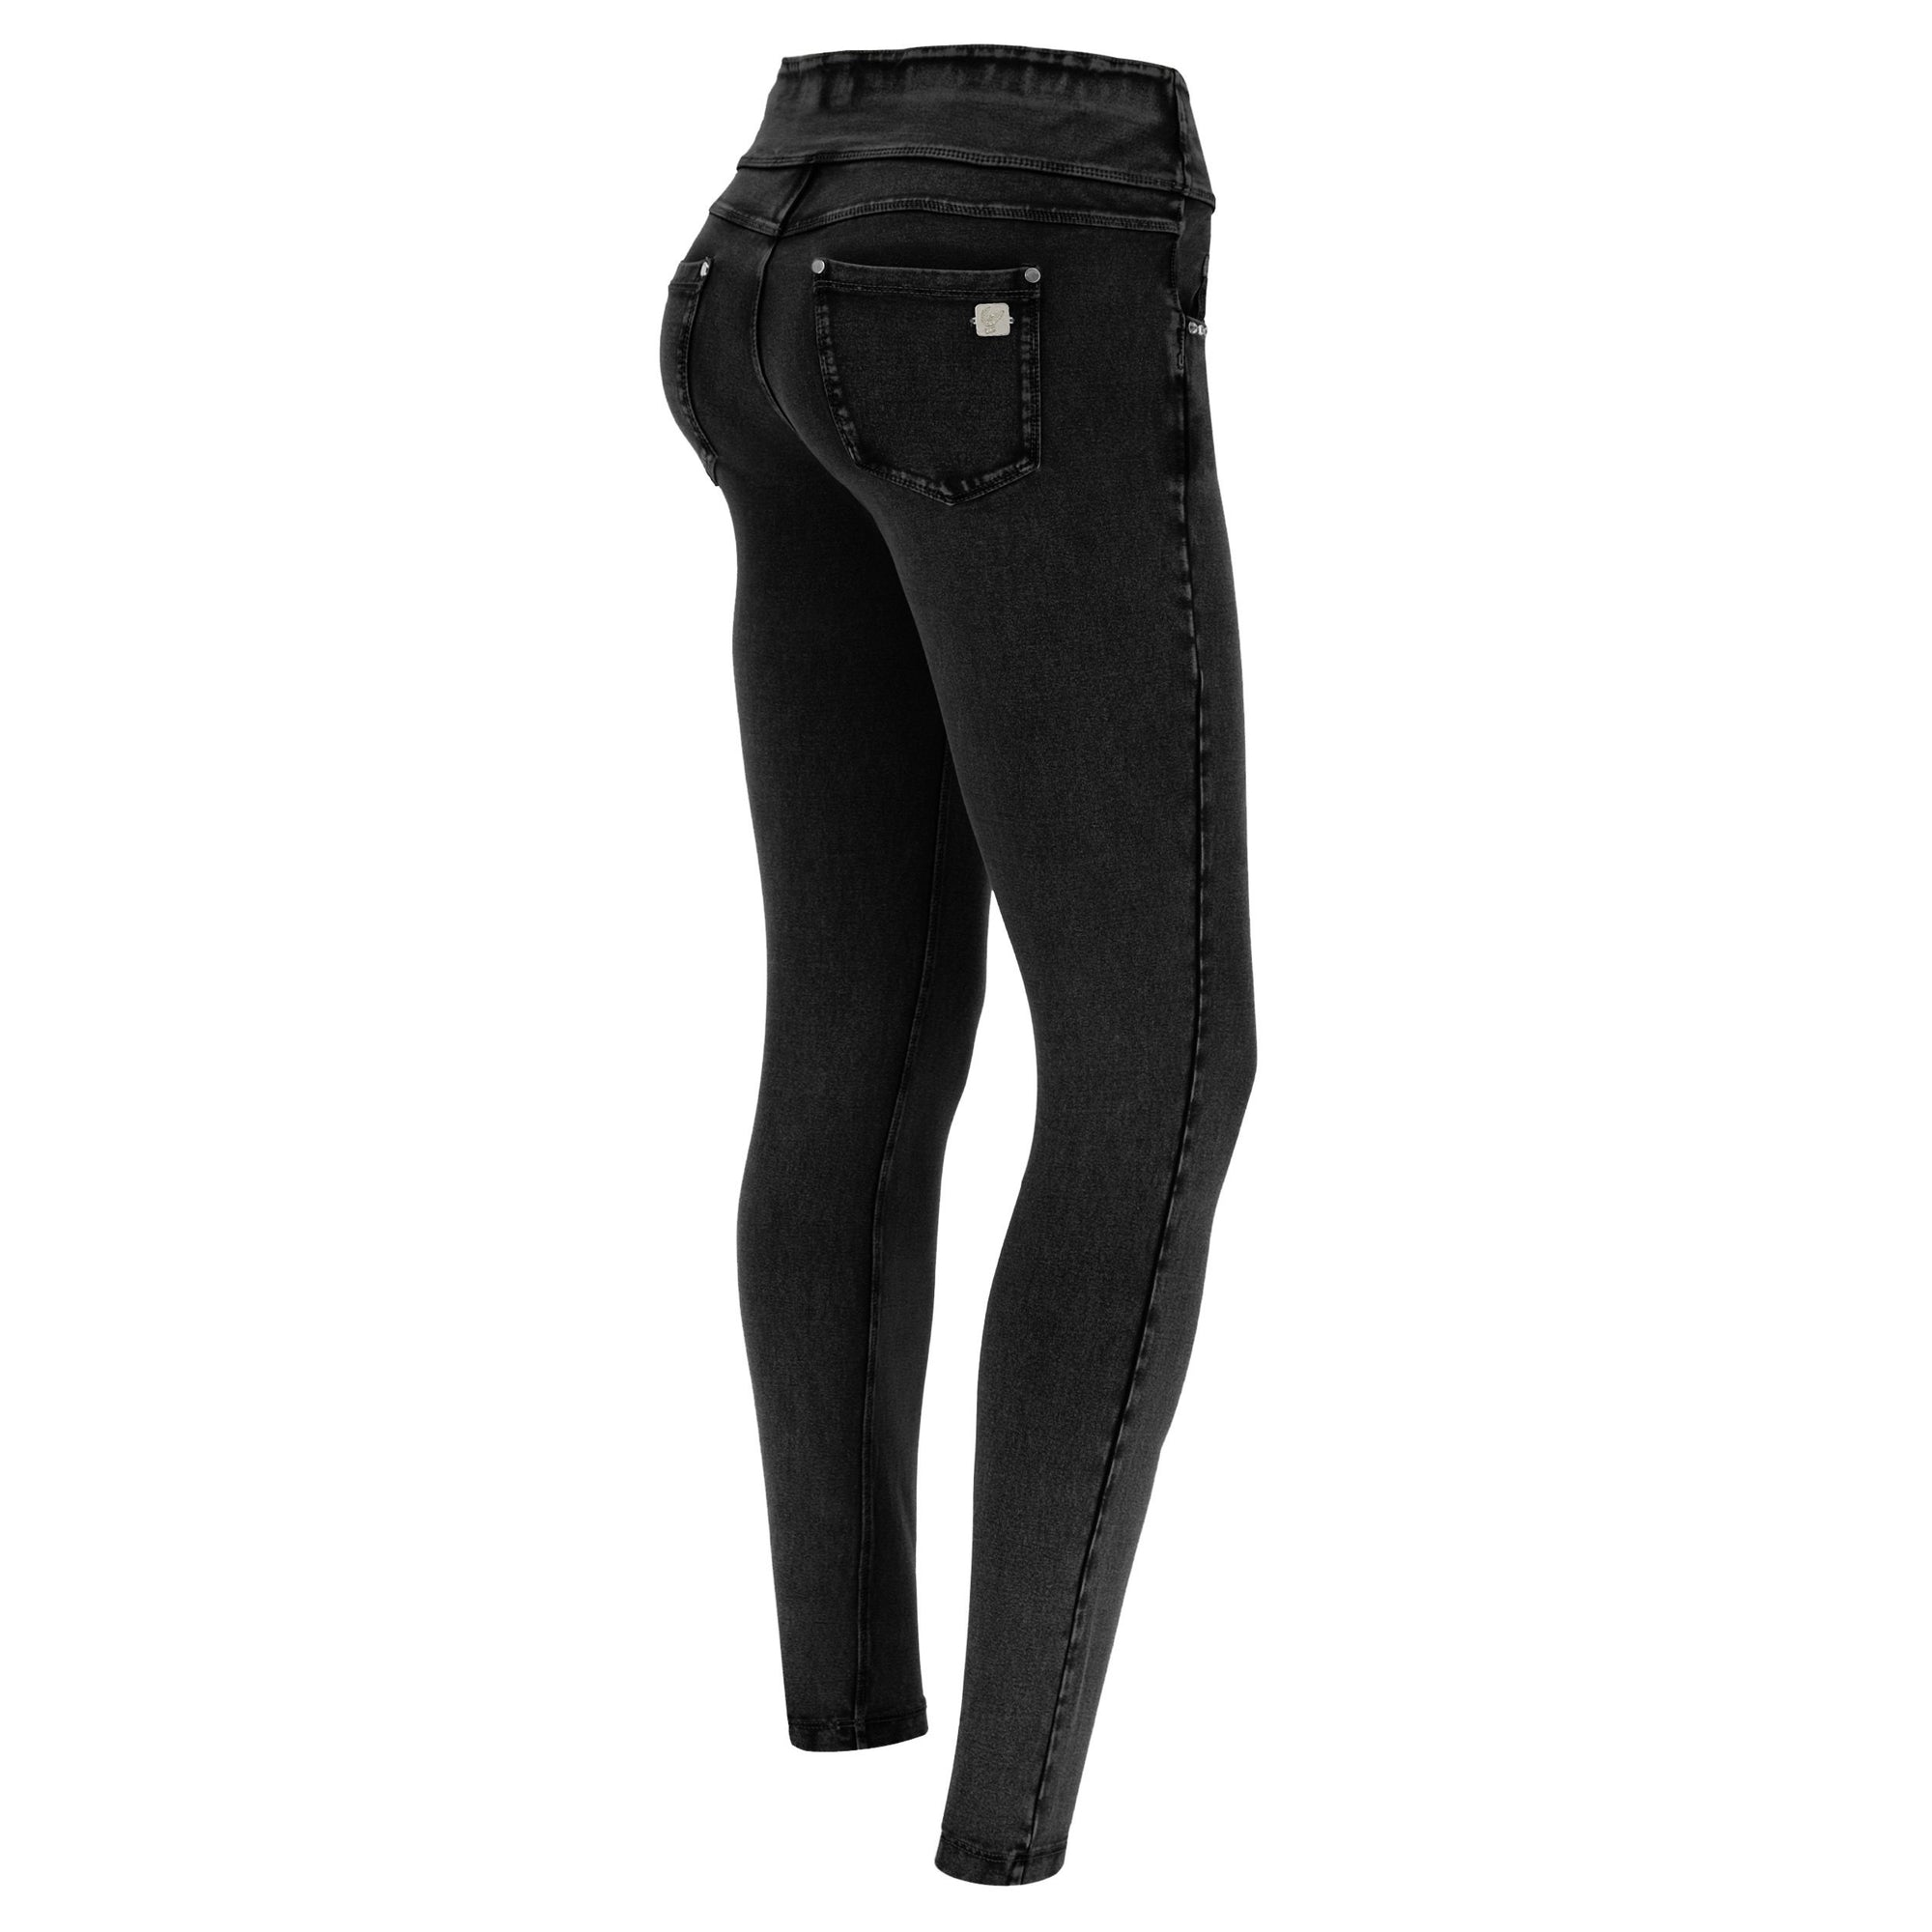 N.O.W JEGGING 5 POCKET BLACK DENIM BLACK STITCH